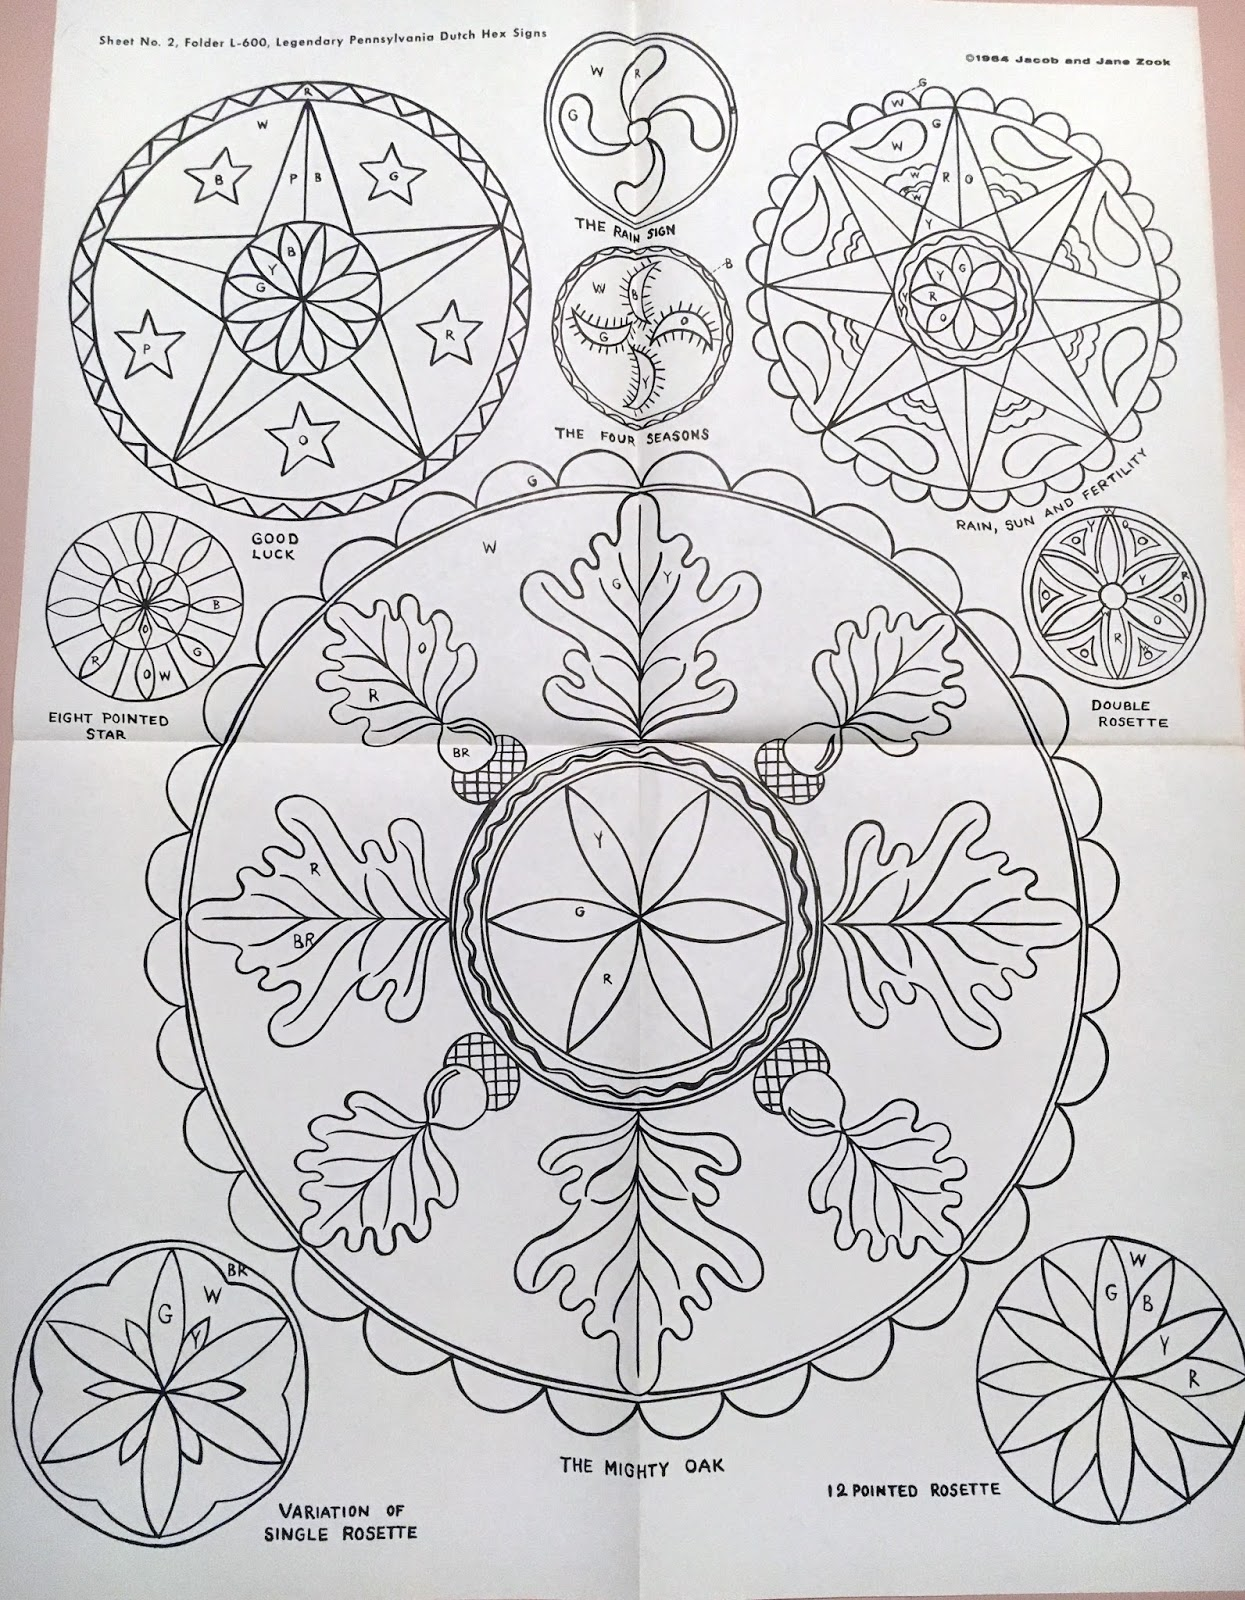 The monkey buddha amish hex sign rosette patterns the rosette pattern is much older more widespread than just the use by the amish here is a flikr photo gallery showing ancient uses of the flower of biocorpaavc Images